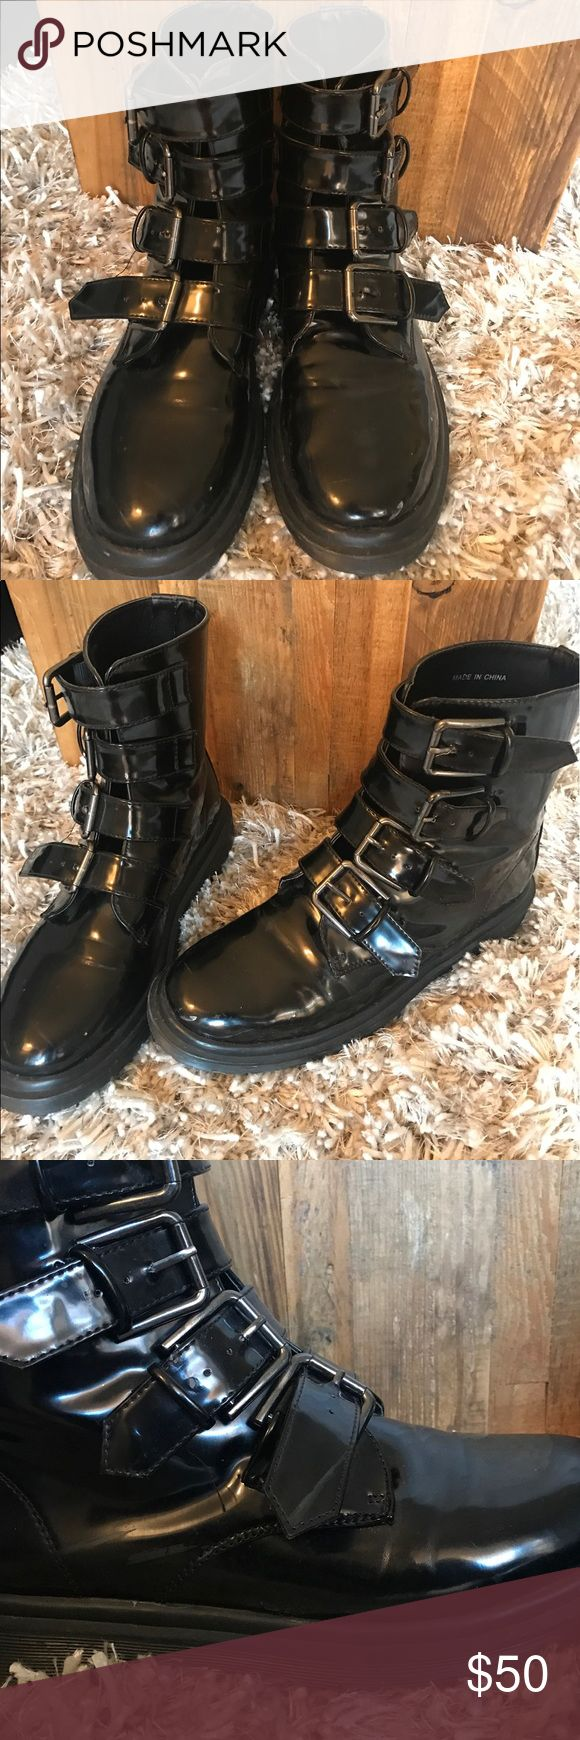 Black Combats Boots Deena & Ozzy- All black shiny combat boots.. in good condition! The third picture shoes a strap that has been broken on the bottom buckle. Other than that, they look new. Deena & Ozzy Shoes Combat & Moto Boots